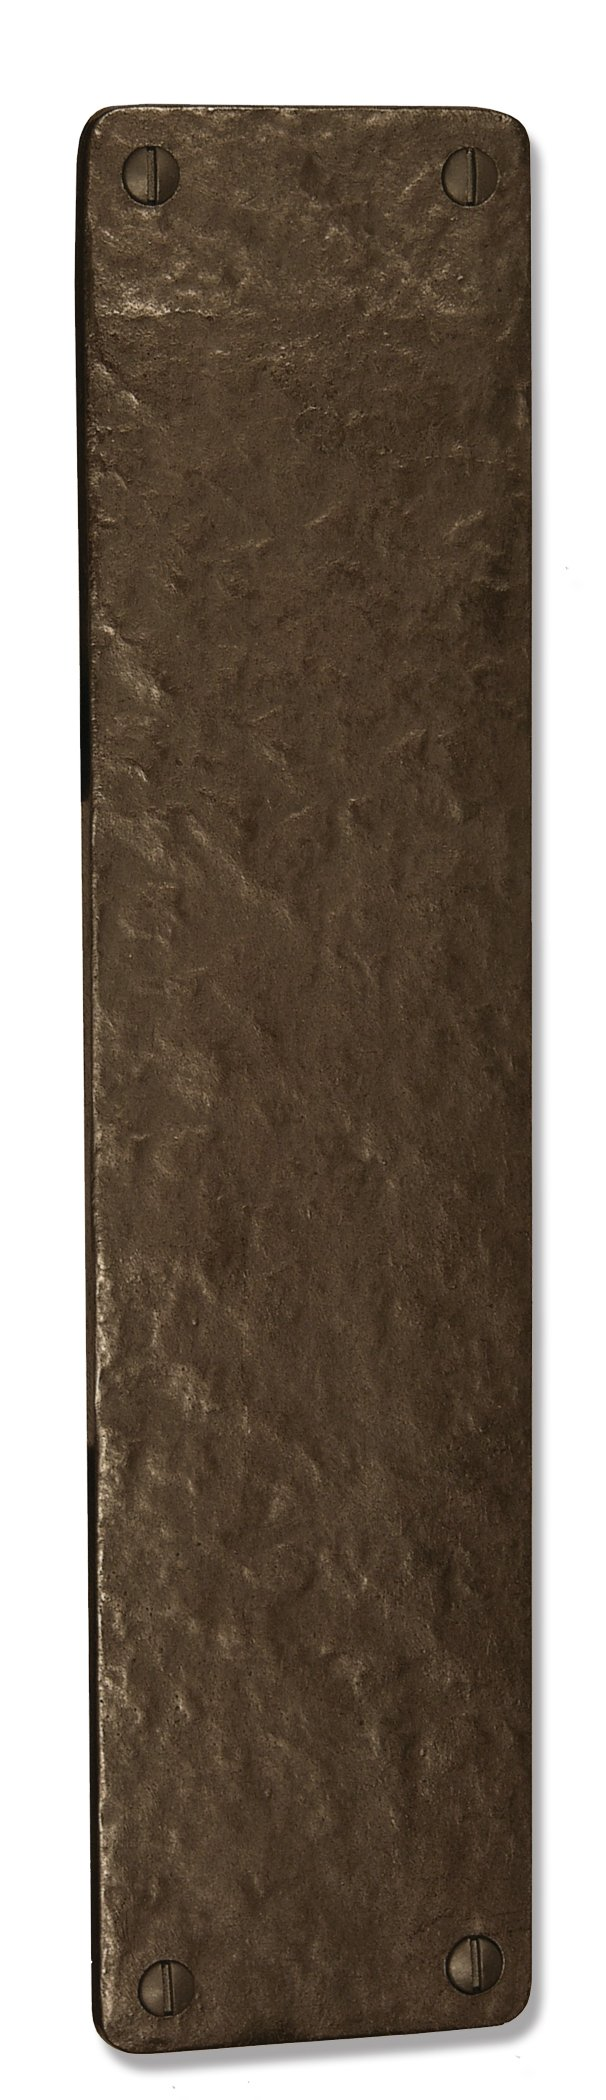 Coastal Bronze - 12'' Square Door Push Plate - Solid Bronze